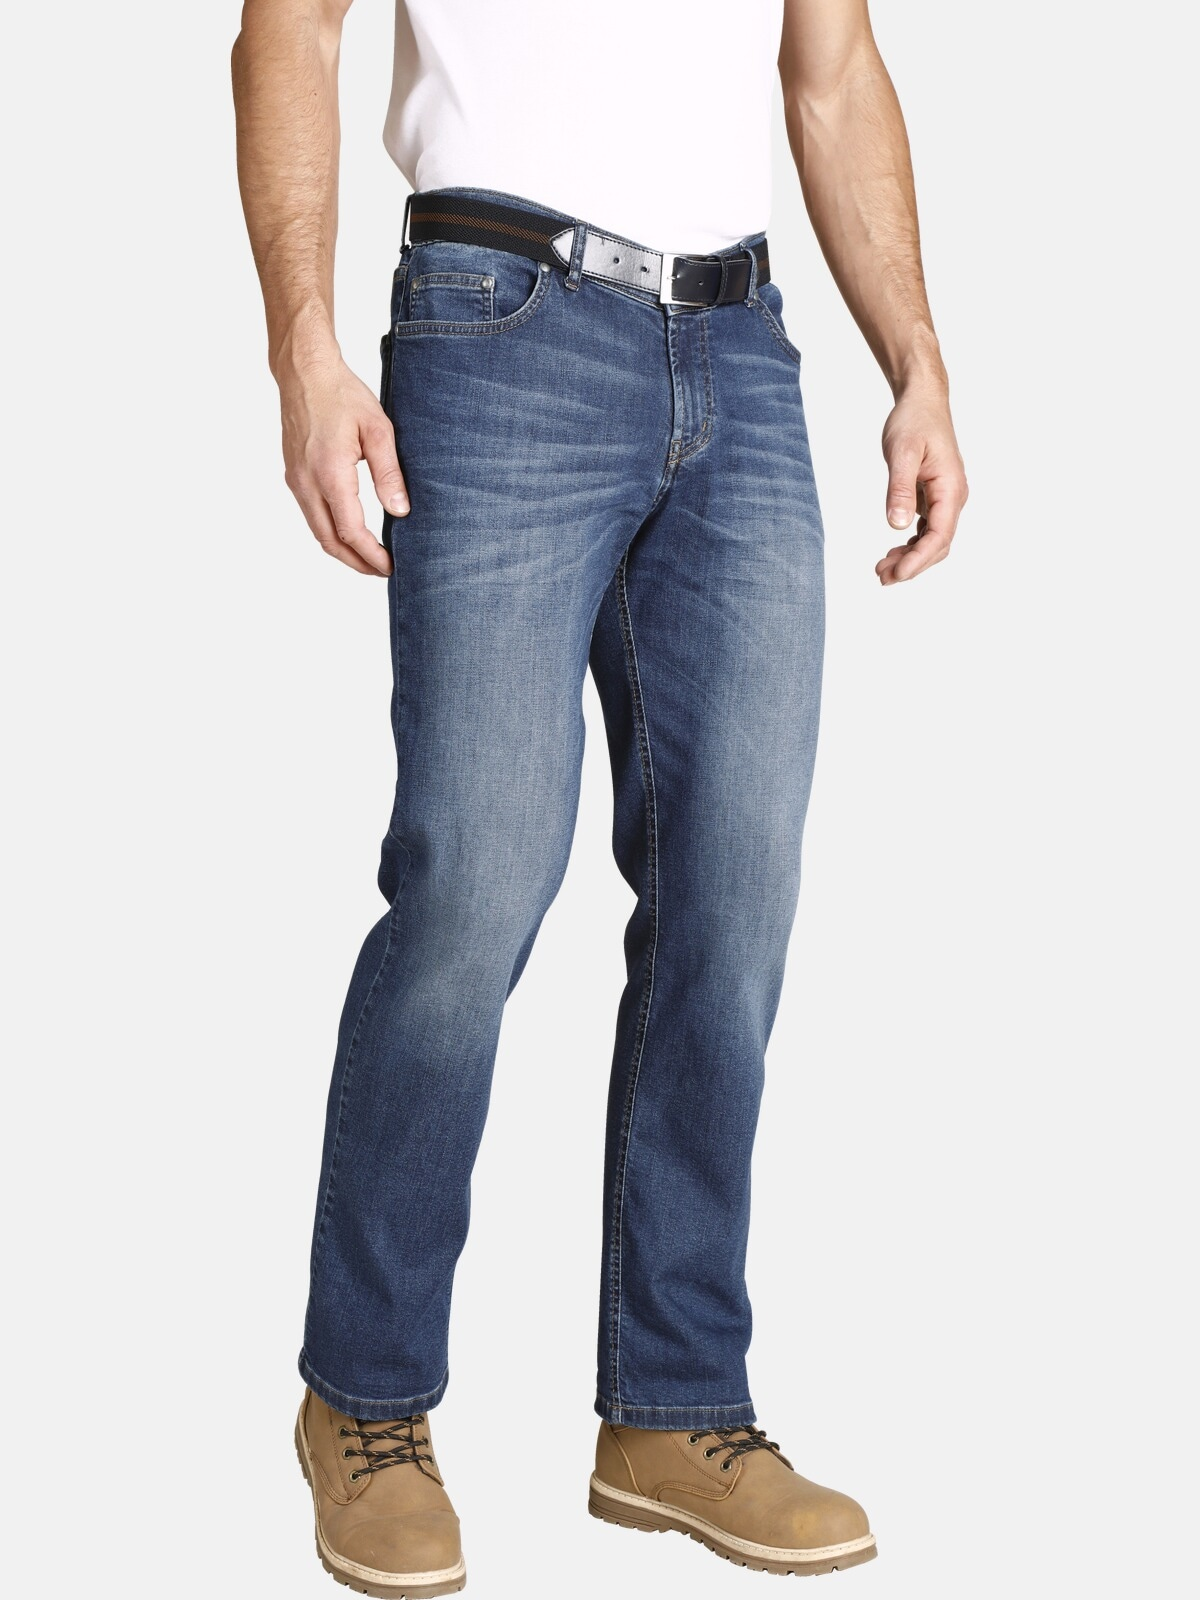 Jan Vanderstorm 5-Pocket-Jeans »JOEL« von Jan Vanderstorm